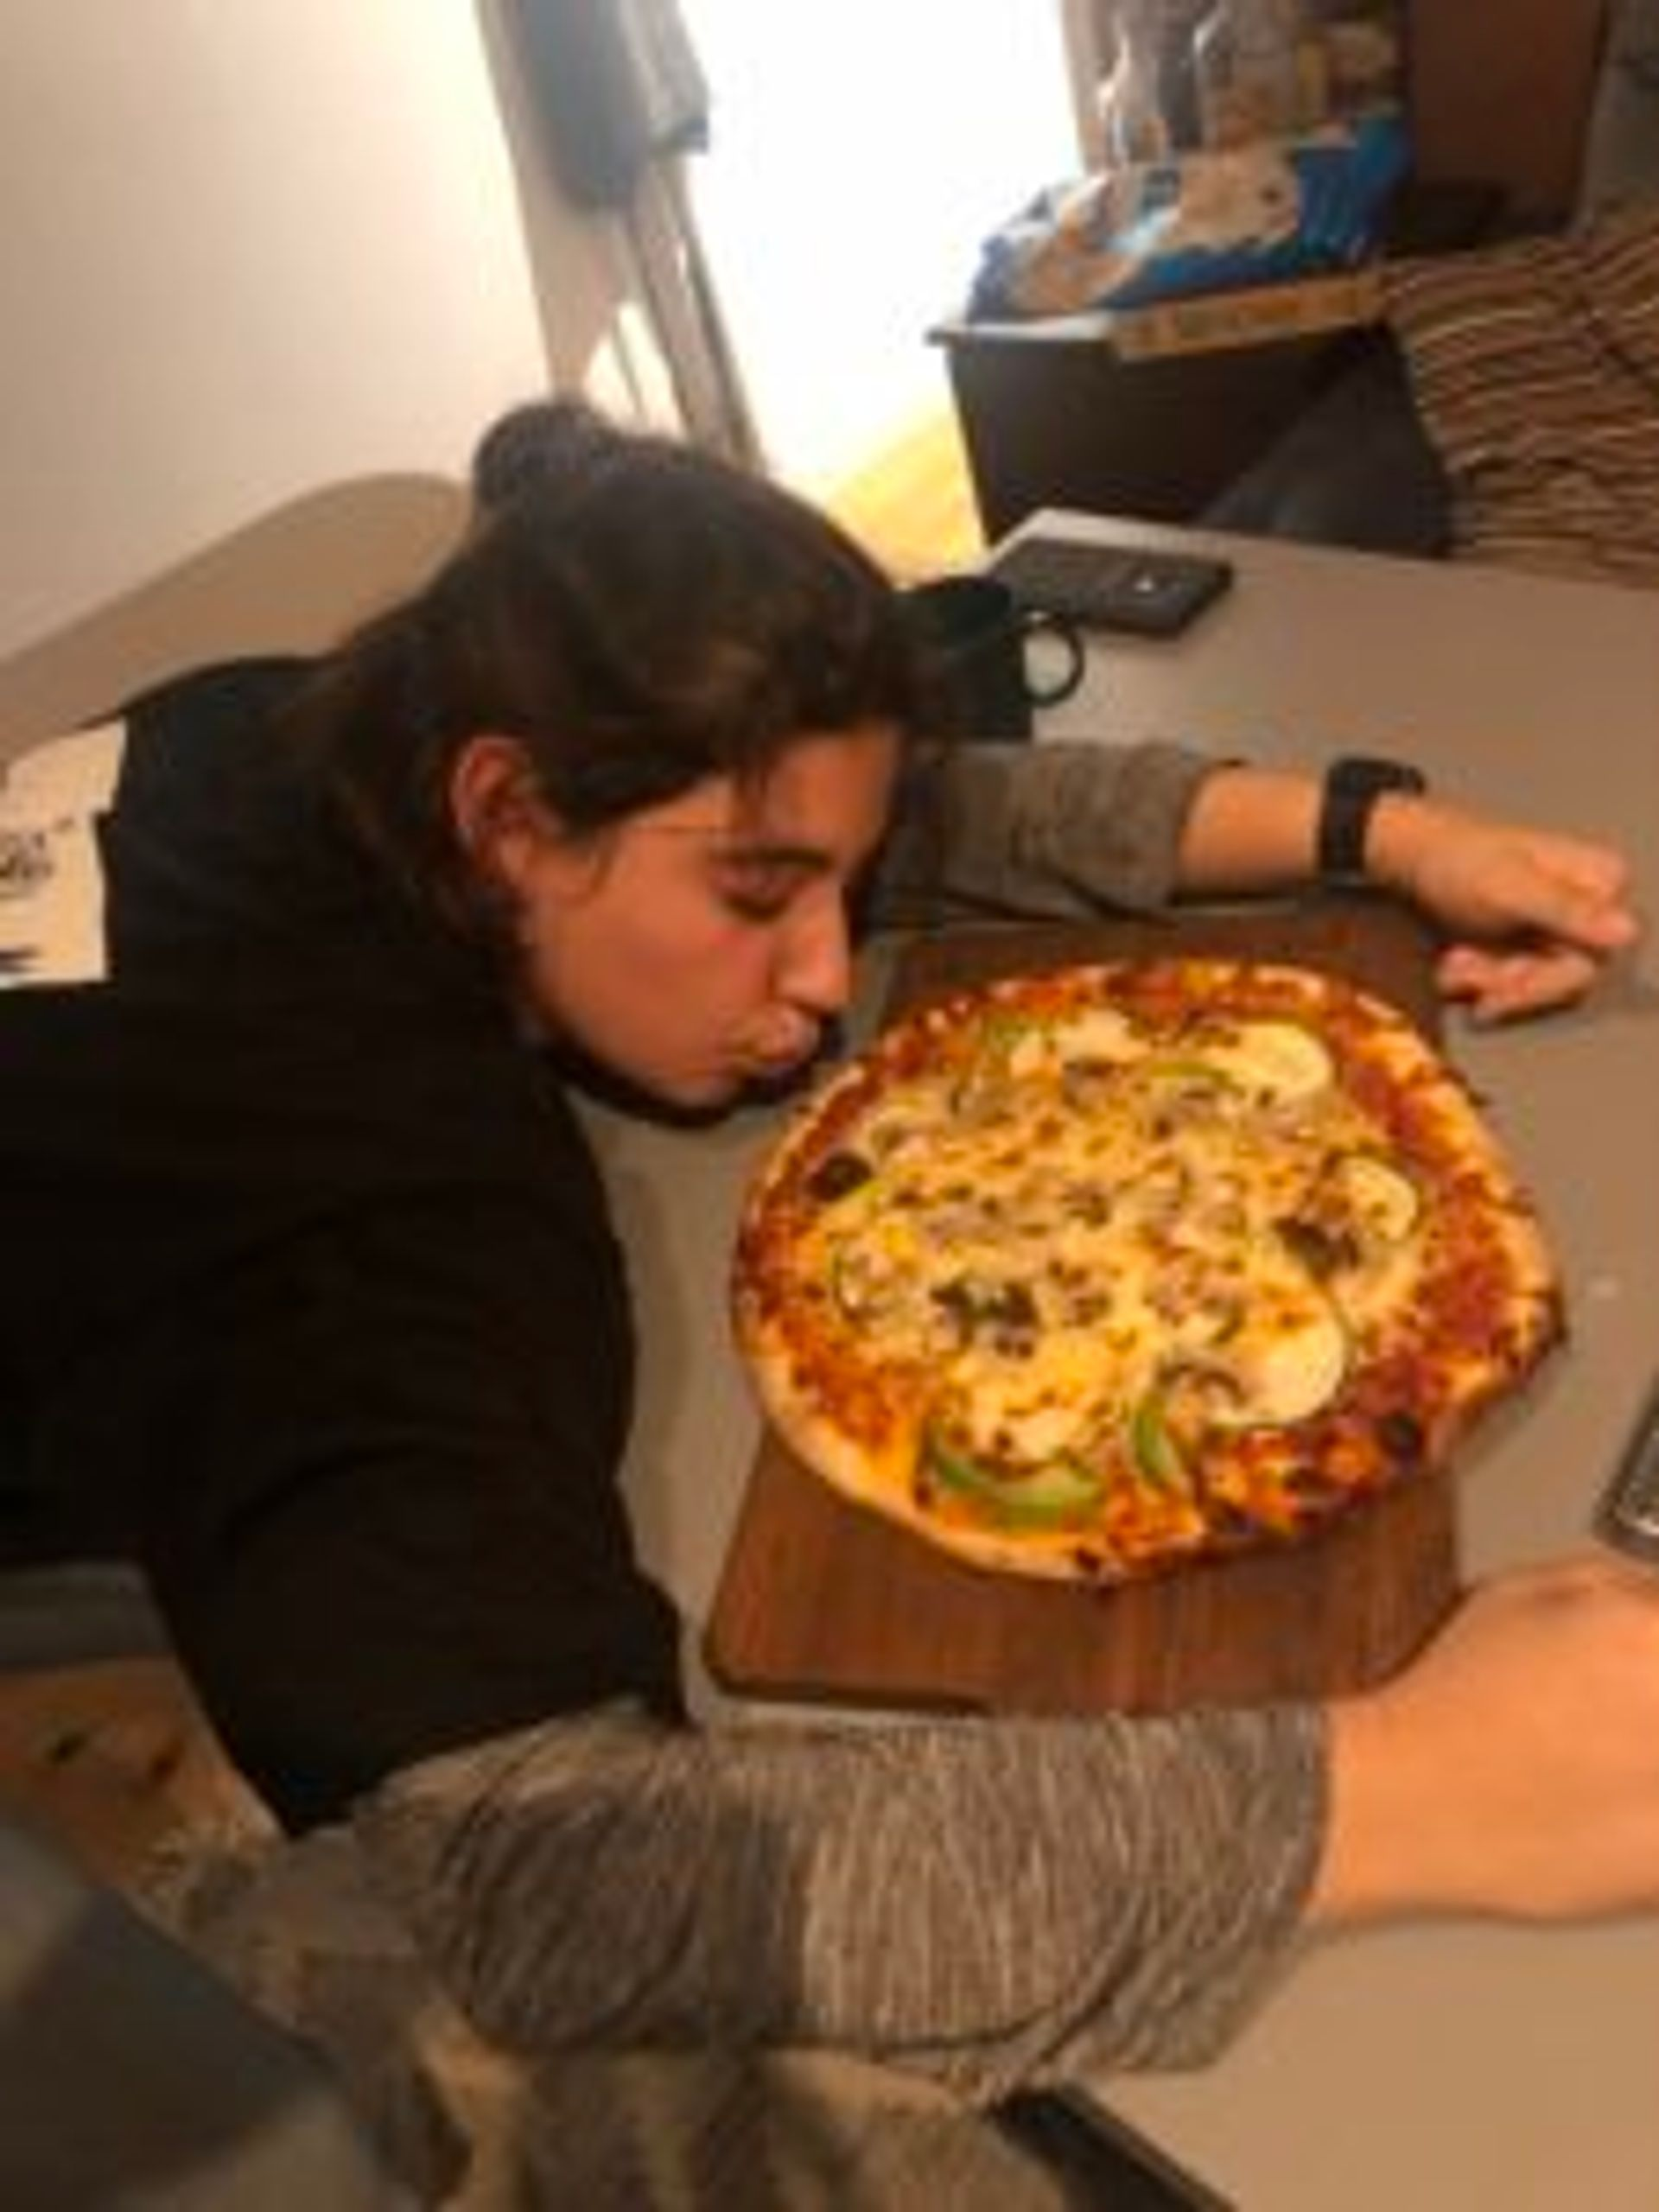 A person looking at a pizza.